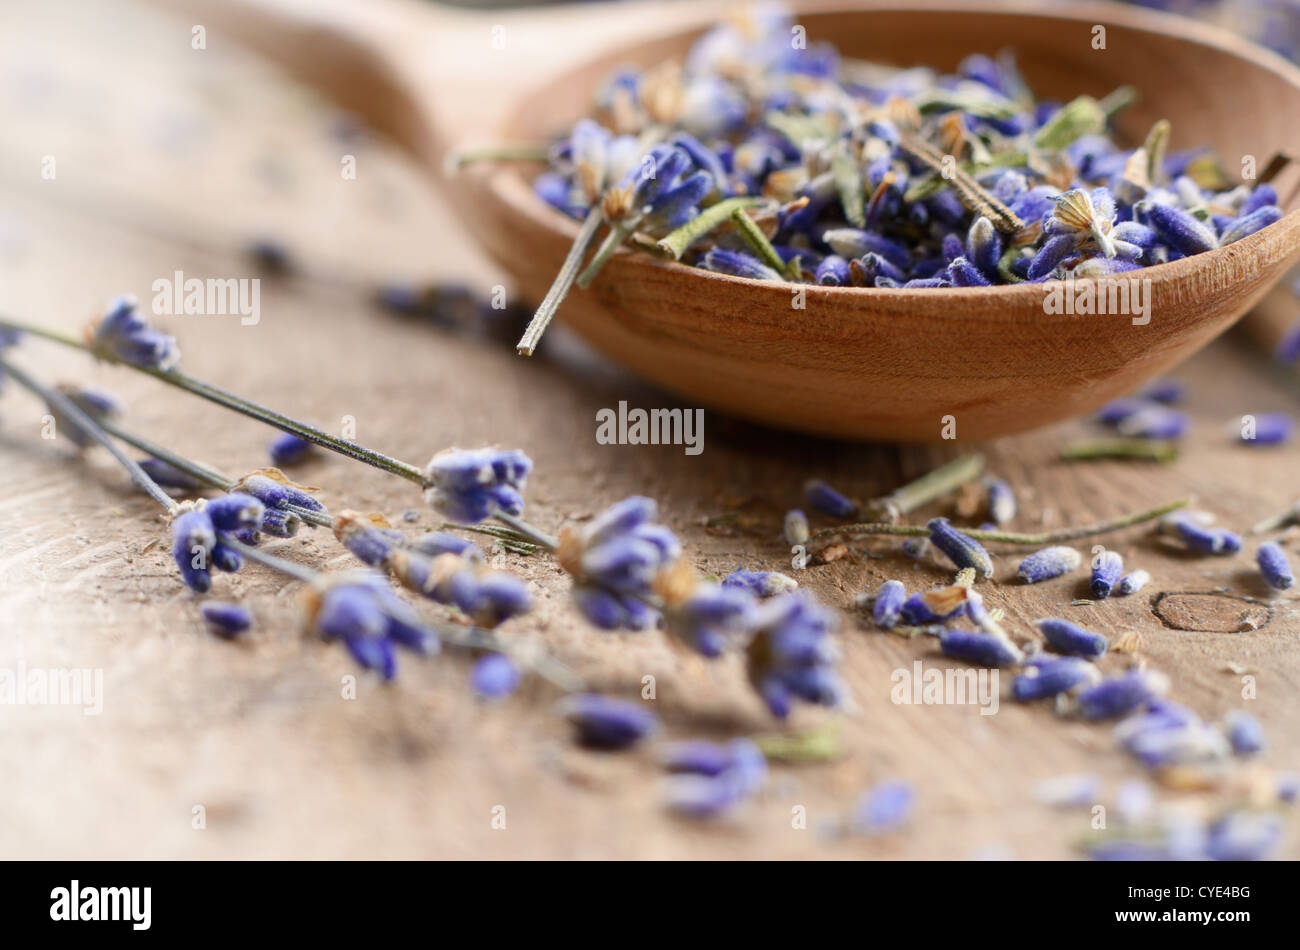 Lavender dry flowers on the oak table - Stock Image